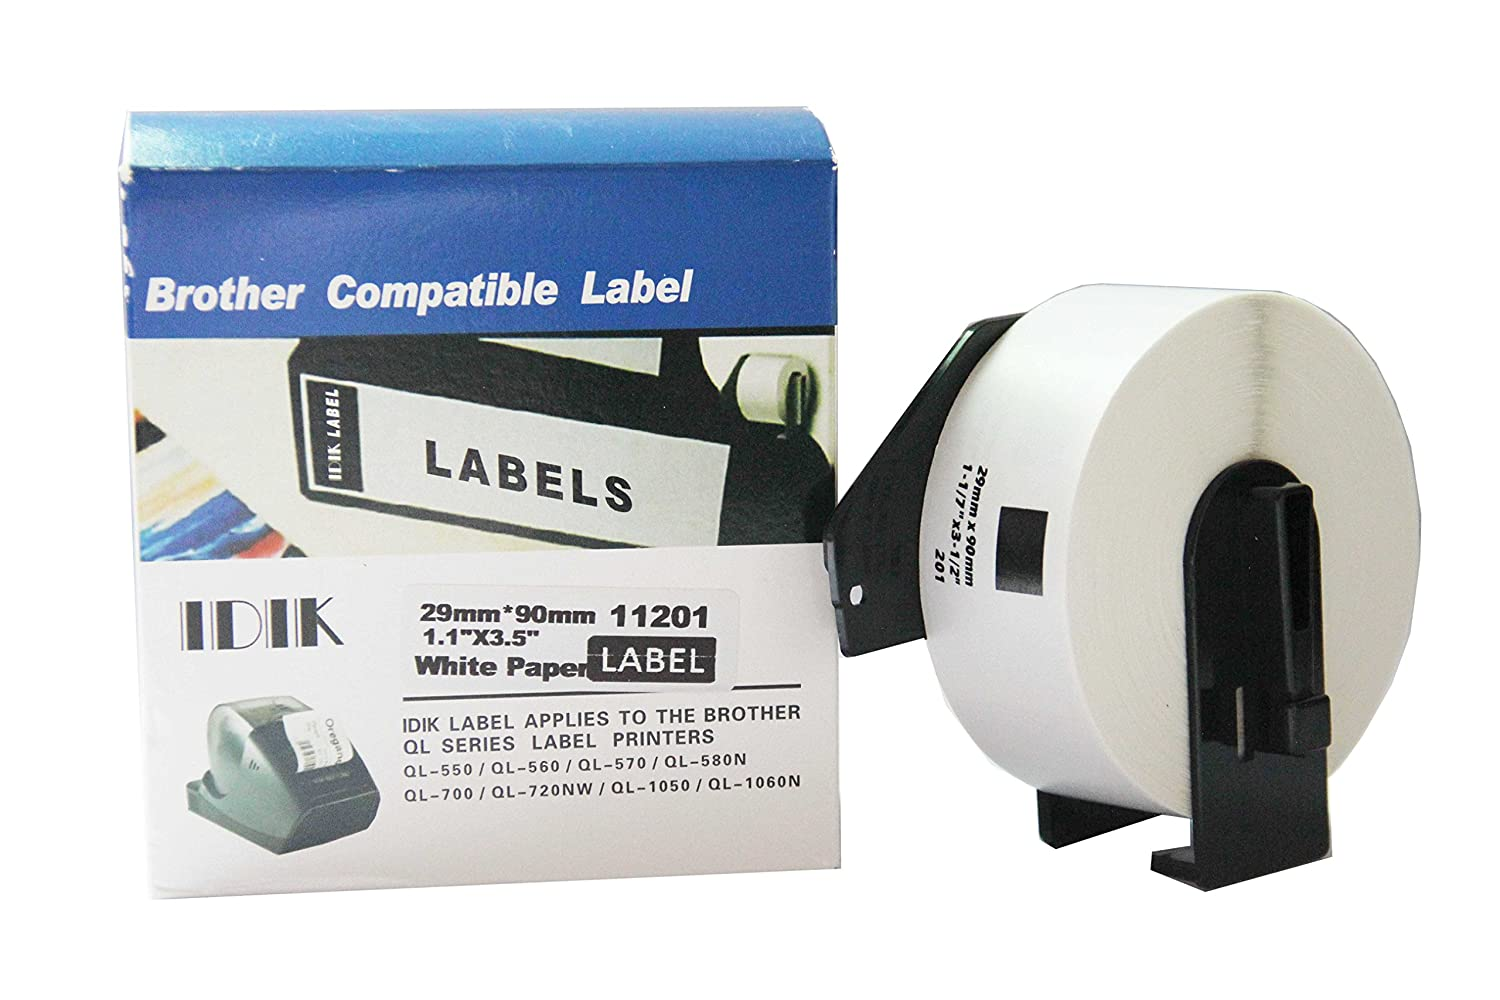 IDIK-11201 Replacement Labels Compatible with Brother DK-1201 Standard Address Label 29mm x 90mm x 400pcs/roll Packed in Individual Printed Retail Box with Permanent Cartridge 7 Petal